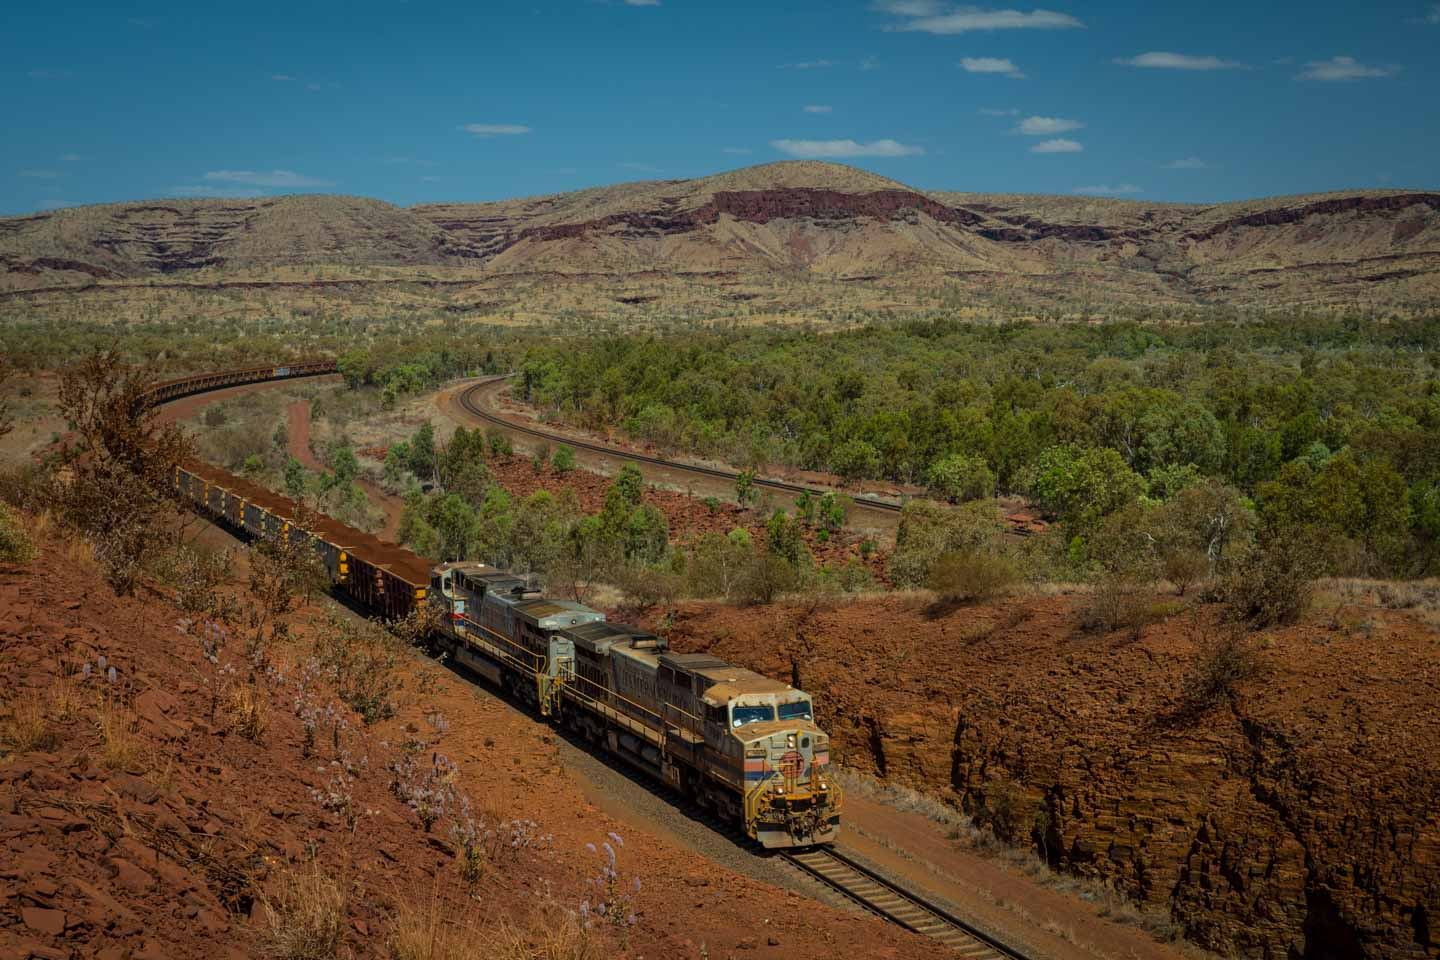 Rio Tinto Train Railway Rail Access Road from Karratha Dampier to Tom Price through the Pilbara region